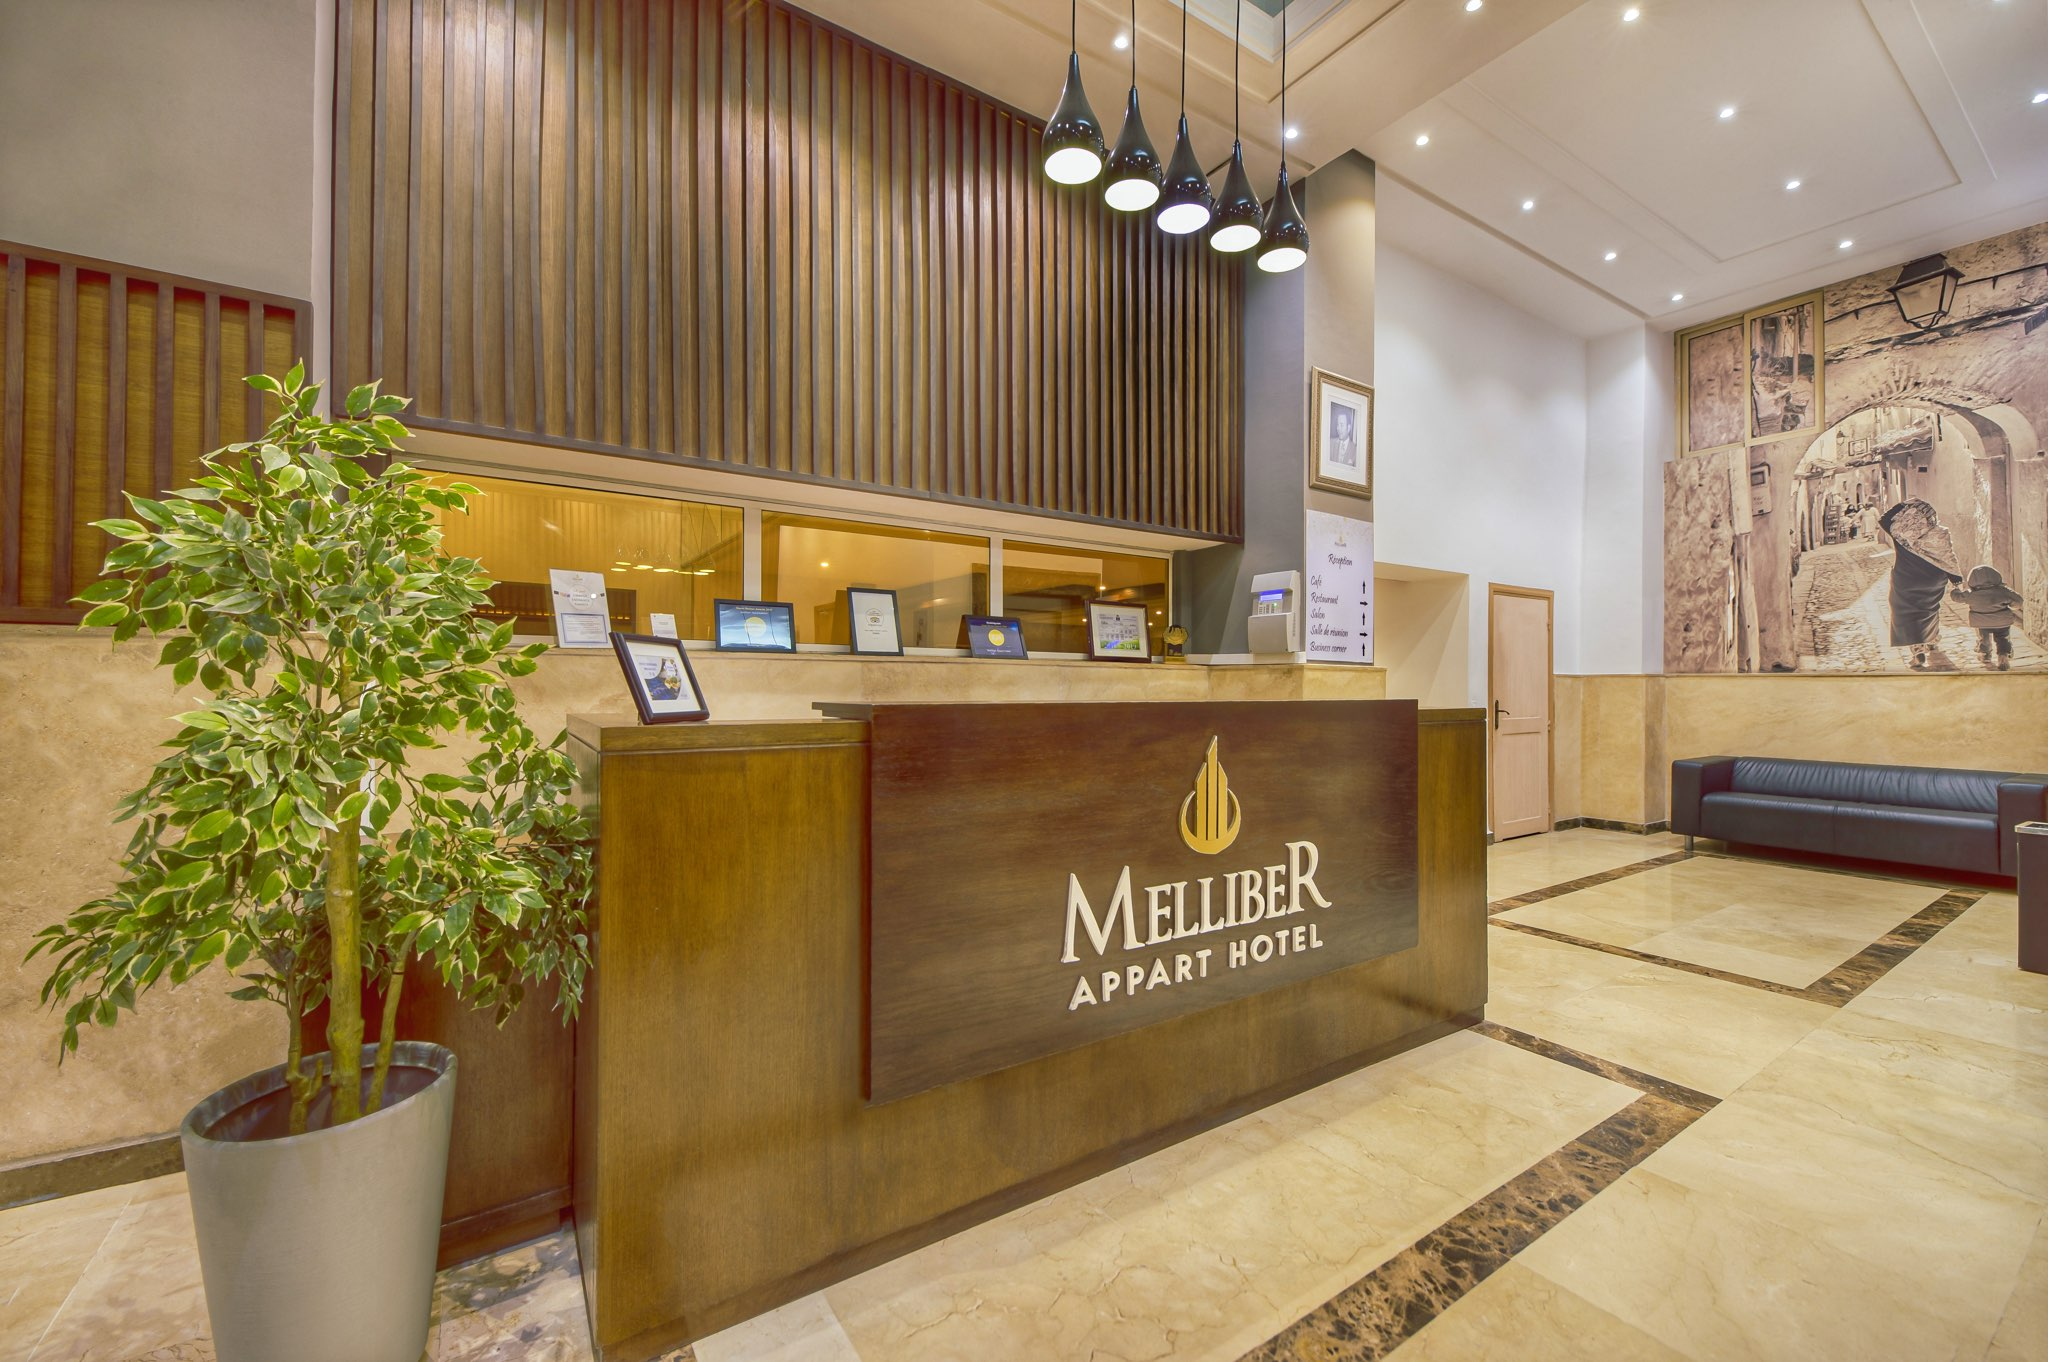 Melliber Appart Hotel Helloworld shooting photo Casablanca 15